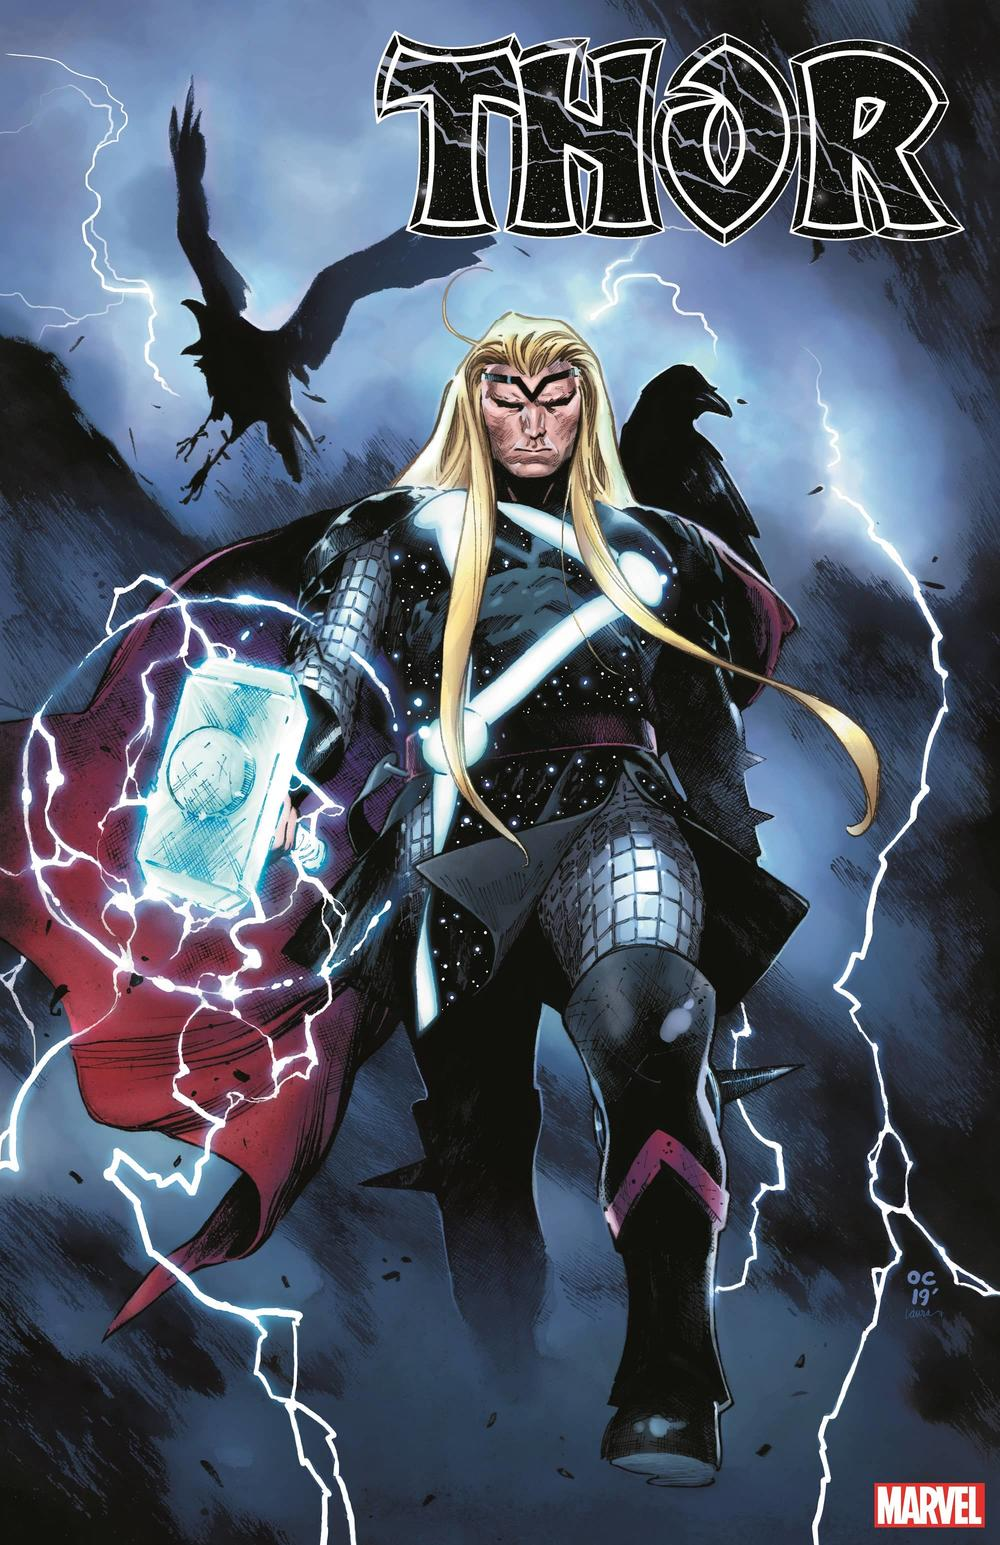 THOR #1 cover by Olivier Coipel and Laura Martin